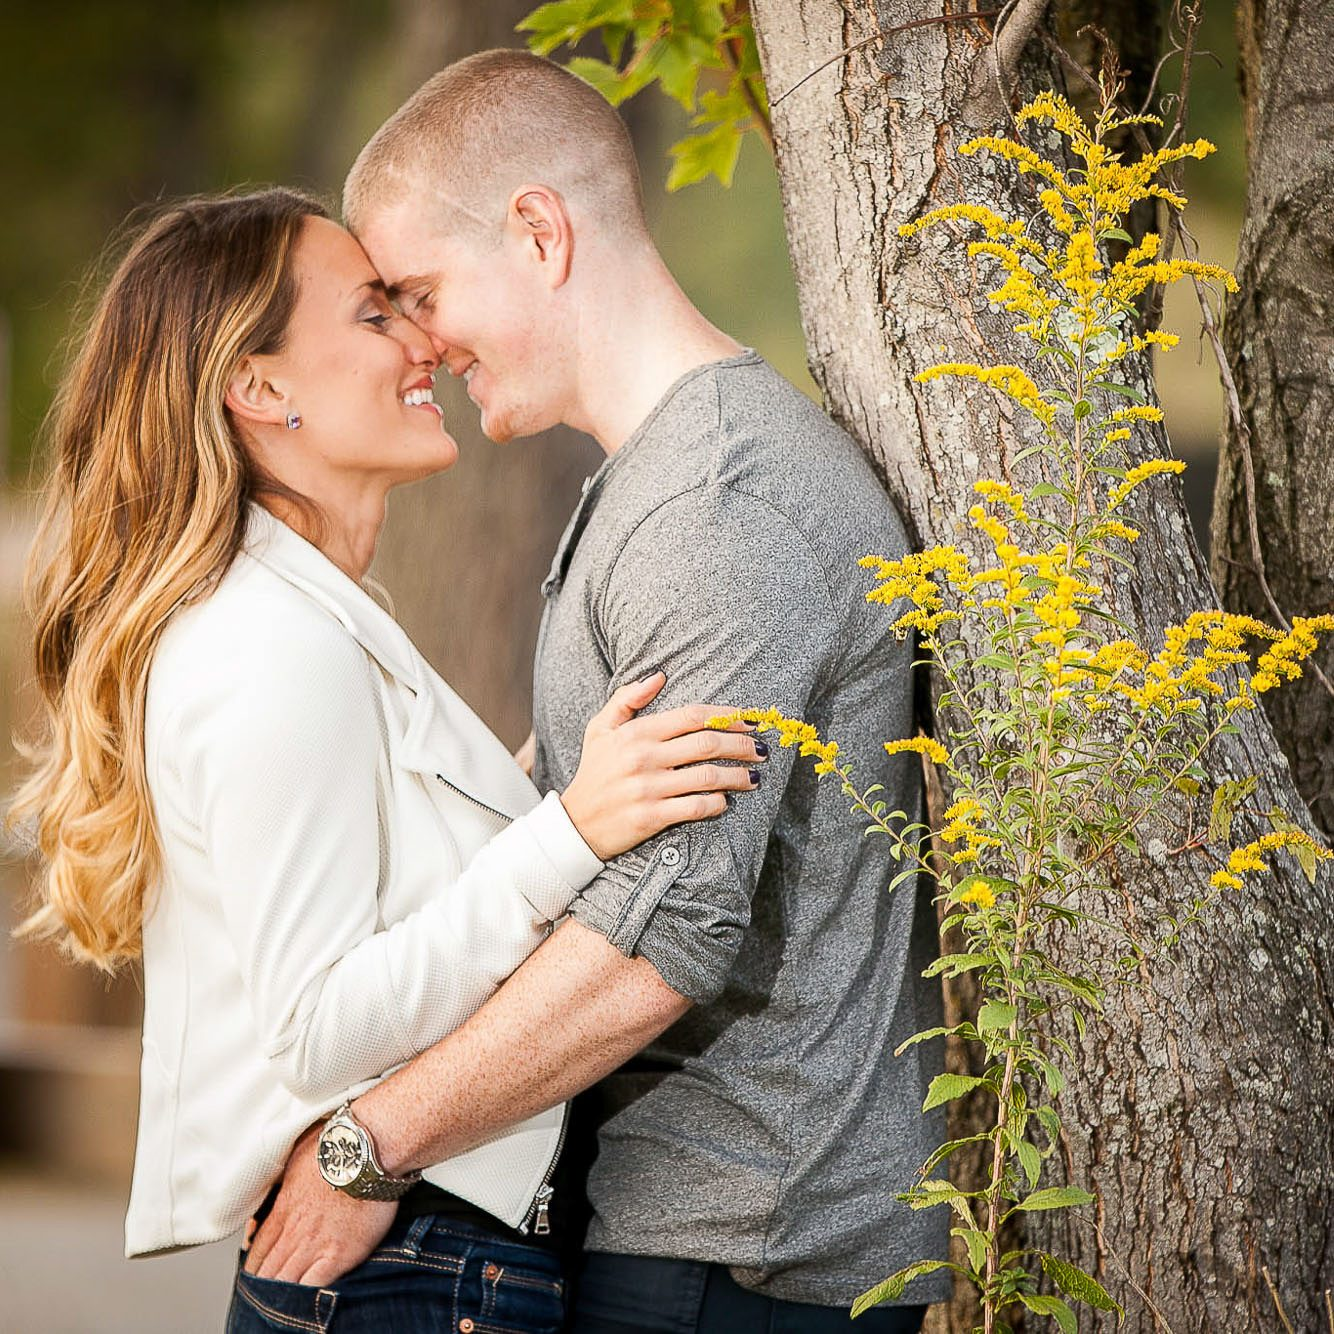 Jenna Perfette Photography - Best Engagement Photographer in Central NJ Somerville Somerset County